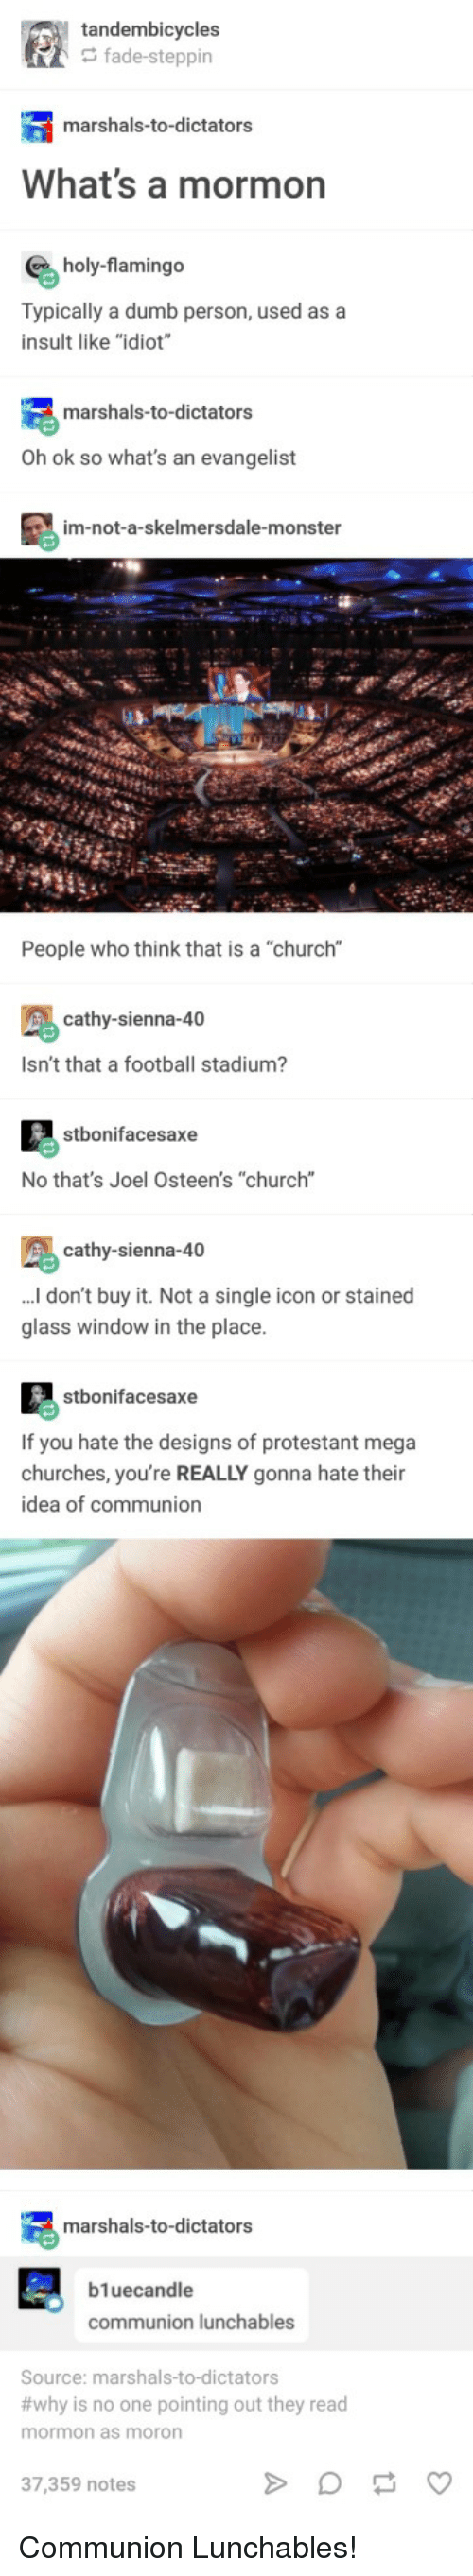 """Church, Dumb, and Football: tandembicycles  fade-steppin  marshals-to-dictators  What's a mormon  holy-flamingo  Typically a dumb person, used as a  insult like """"idiot  marshals-to-dictators  Oh ok so what's an evangelist  im-not-a-skelmersdale-monster  People who think that is a """"church""""  ROR  cathy-sienna-40  Isn't that a football stadium?  stbonifacesaxe  No that's Joel Osteen's """"church""""  cathy-sienna-40  . don't buy it. Not a single icon or stained  glass window in the place  stbonifacesaxe  If you hate the designs of protestant mega  churches, you're REALLY gonna hate their  idea of communion  marshals-to-dictators  b1uecandle  communion lunchables  Source: marshals-to-dictators  #why is no one pointing out they read  mormon as moron  37,359 notes Communion Lunchables!"""